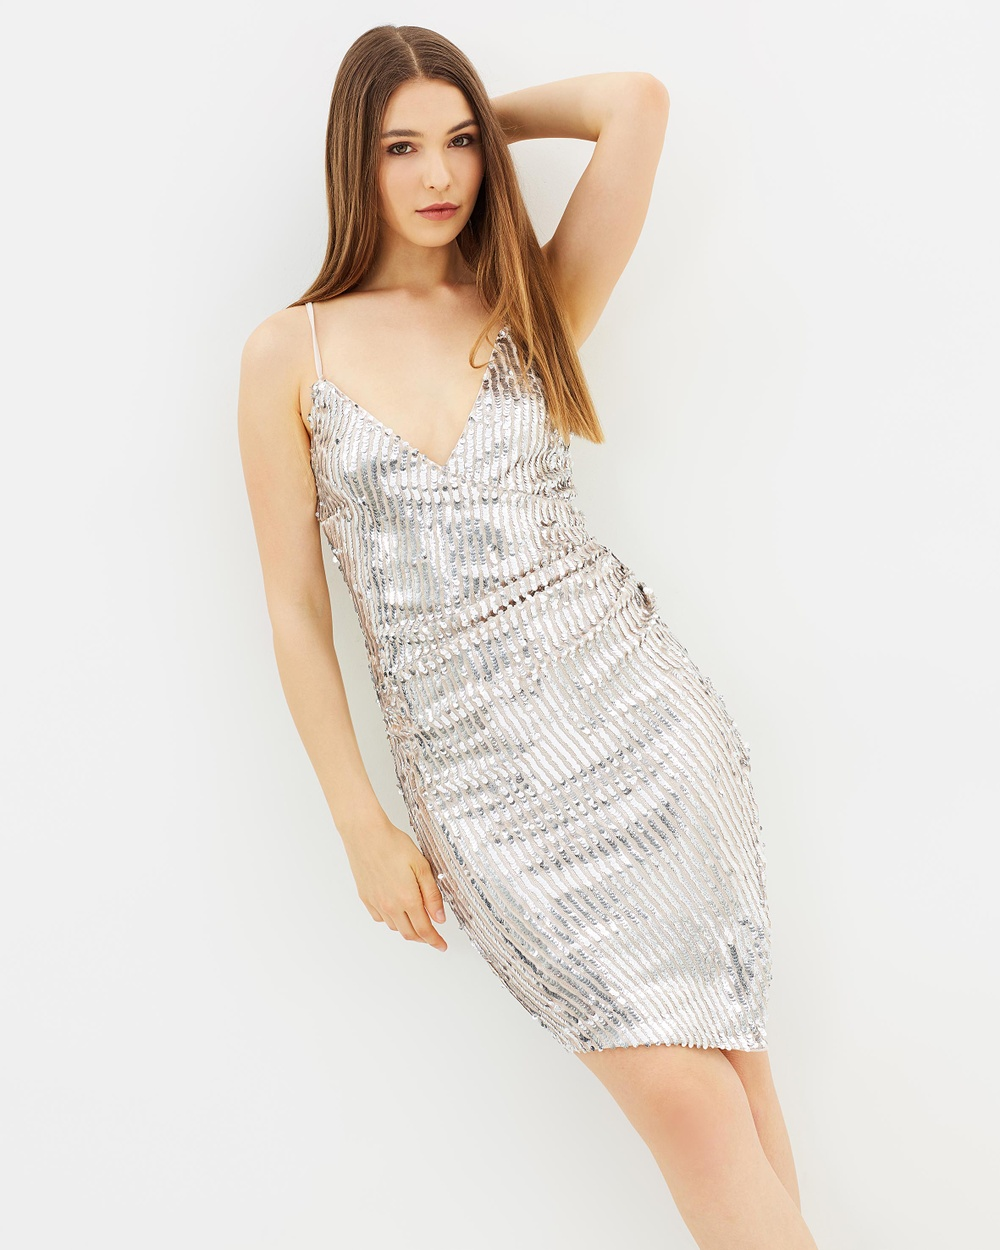 Lipsy Saturday Night Sequin Body Con Dress Bodycon Dresses Silver Saturday Night Sequin Body-Con Dress